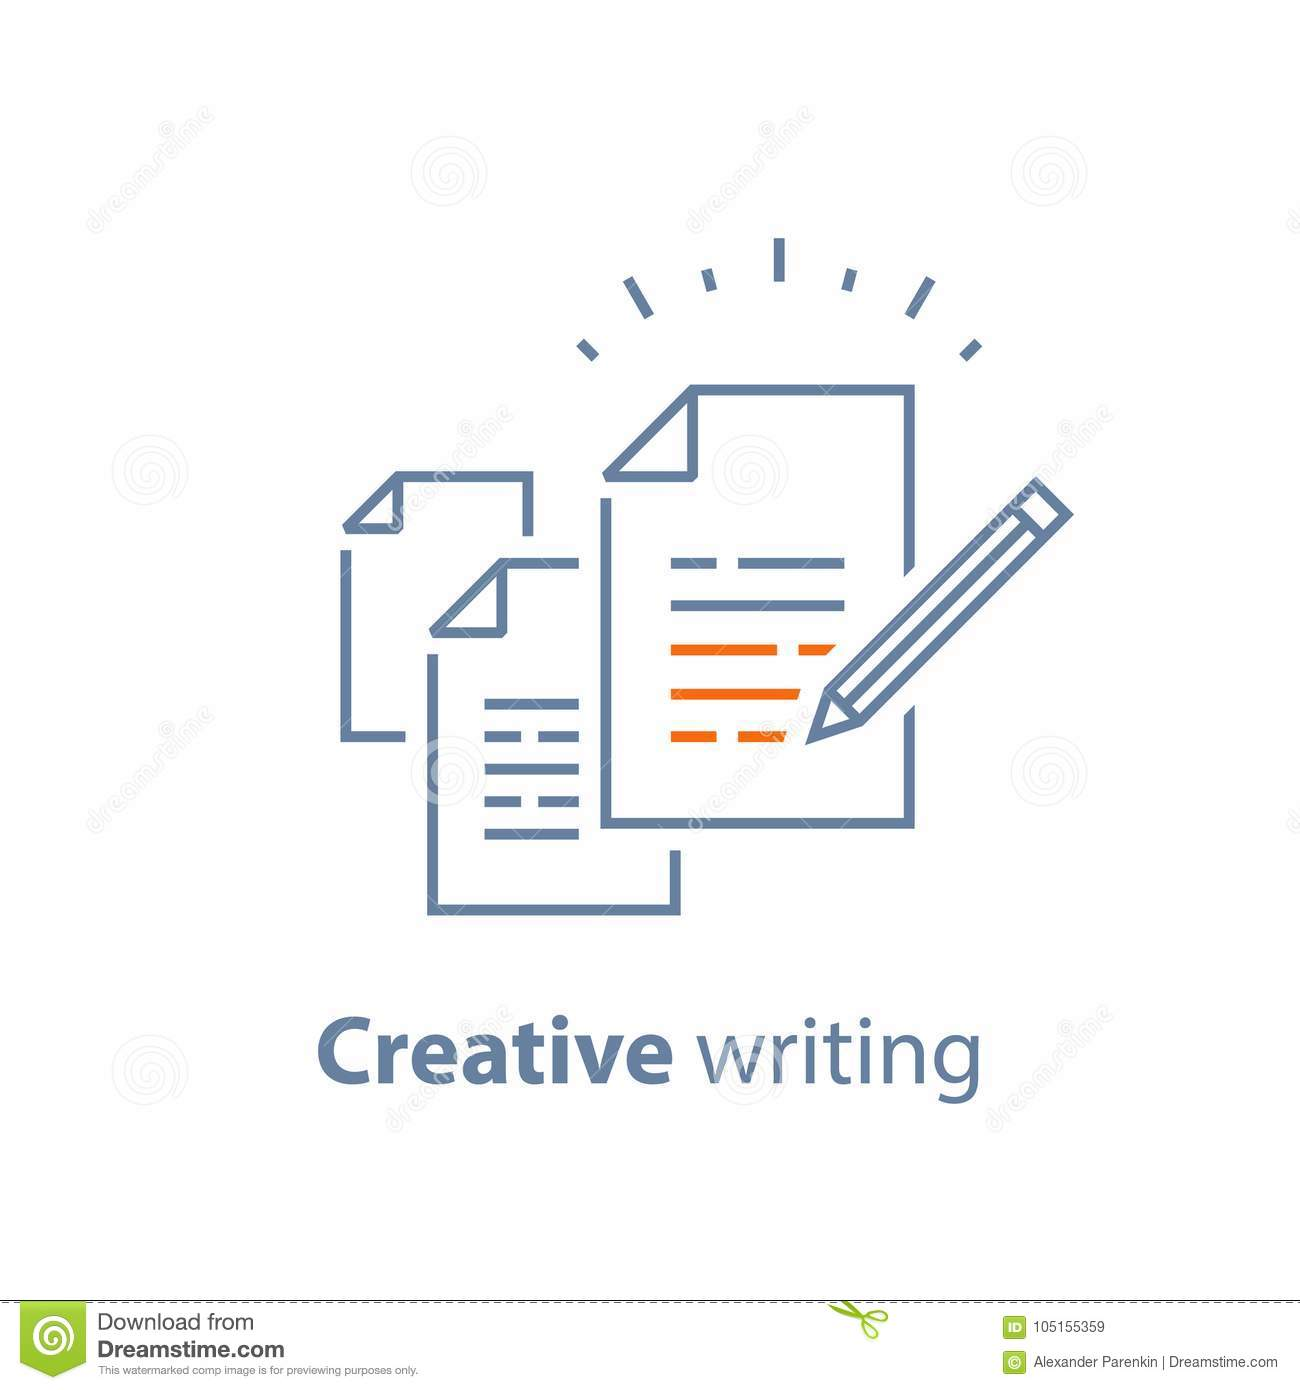 Storytelling assignment quizlet.. central washington university creative writing